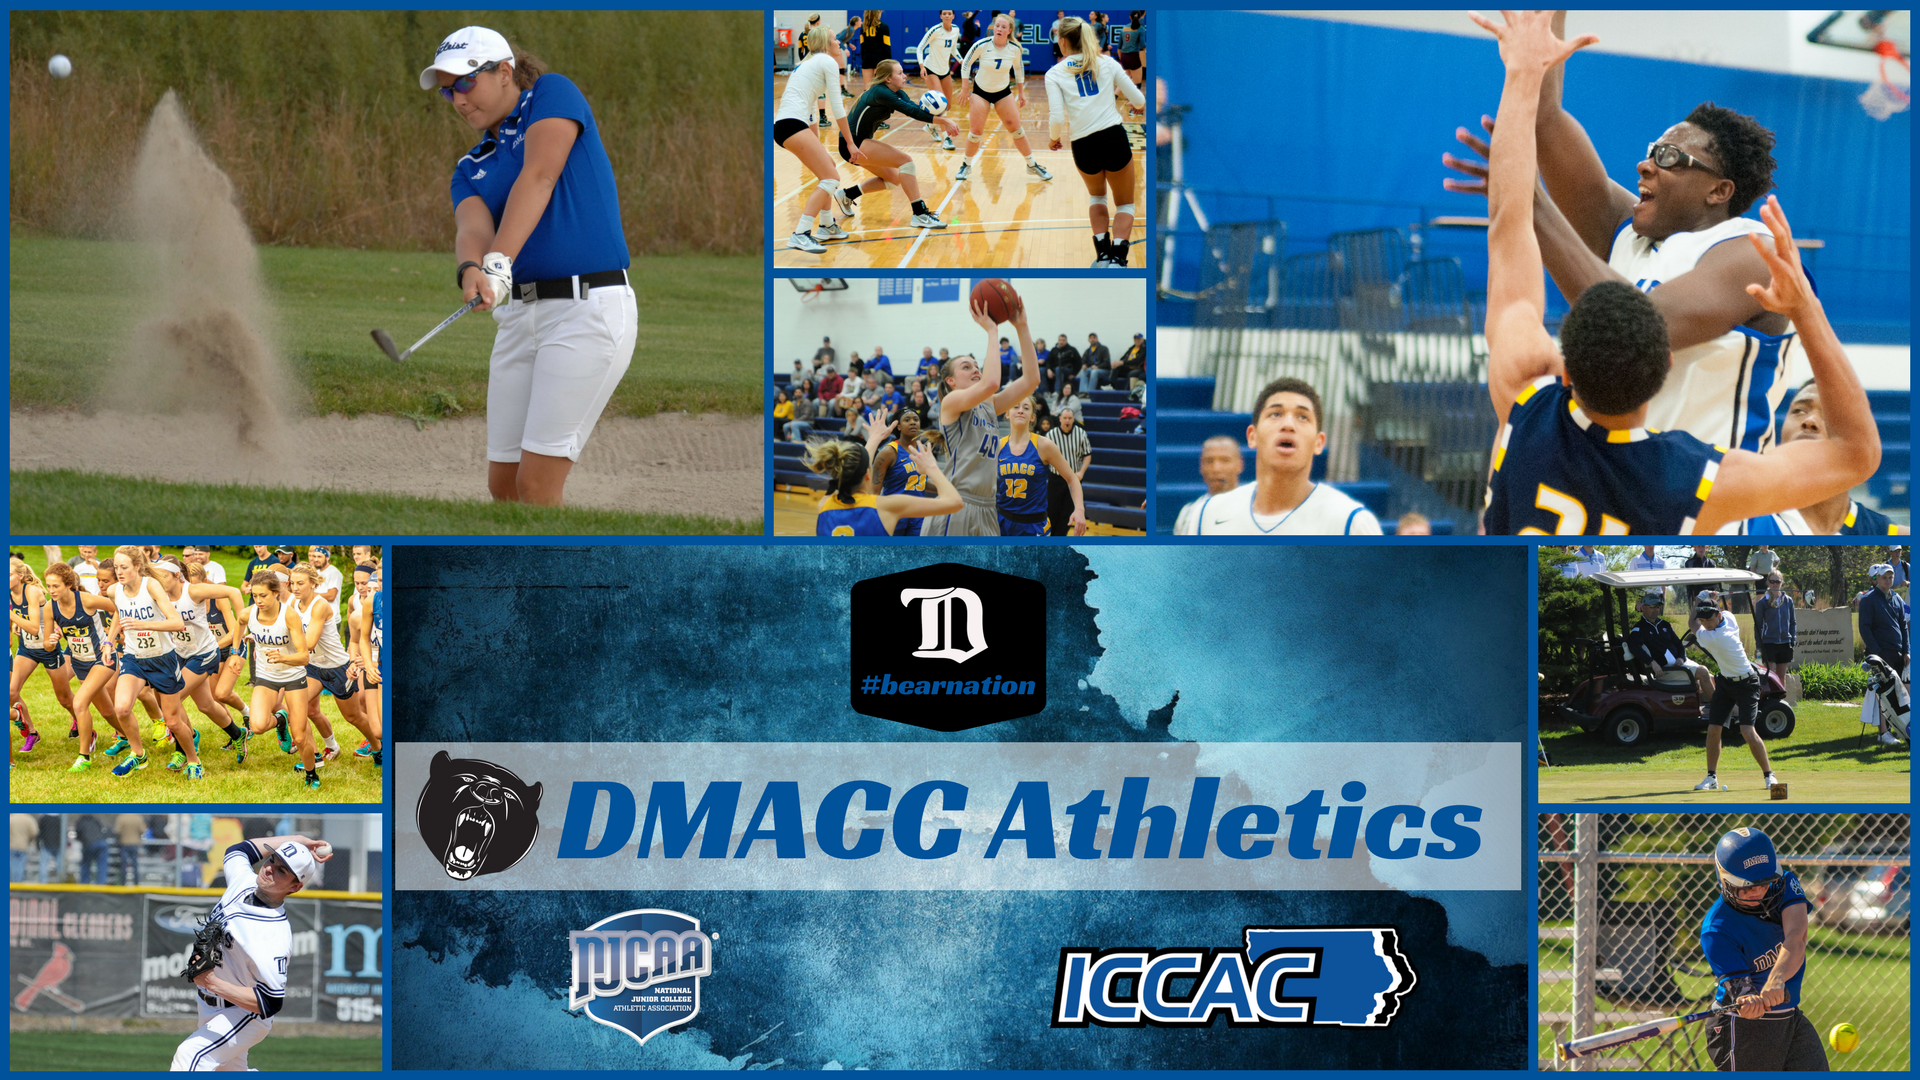 DMACC Athletics Collage